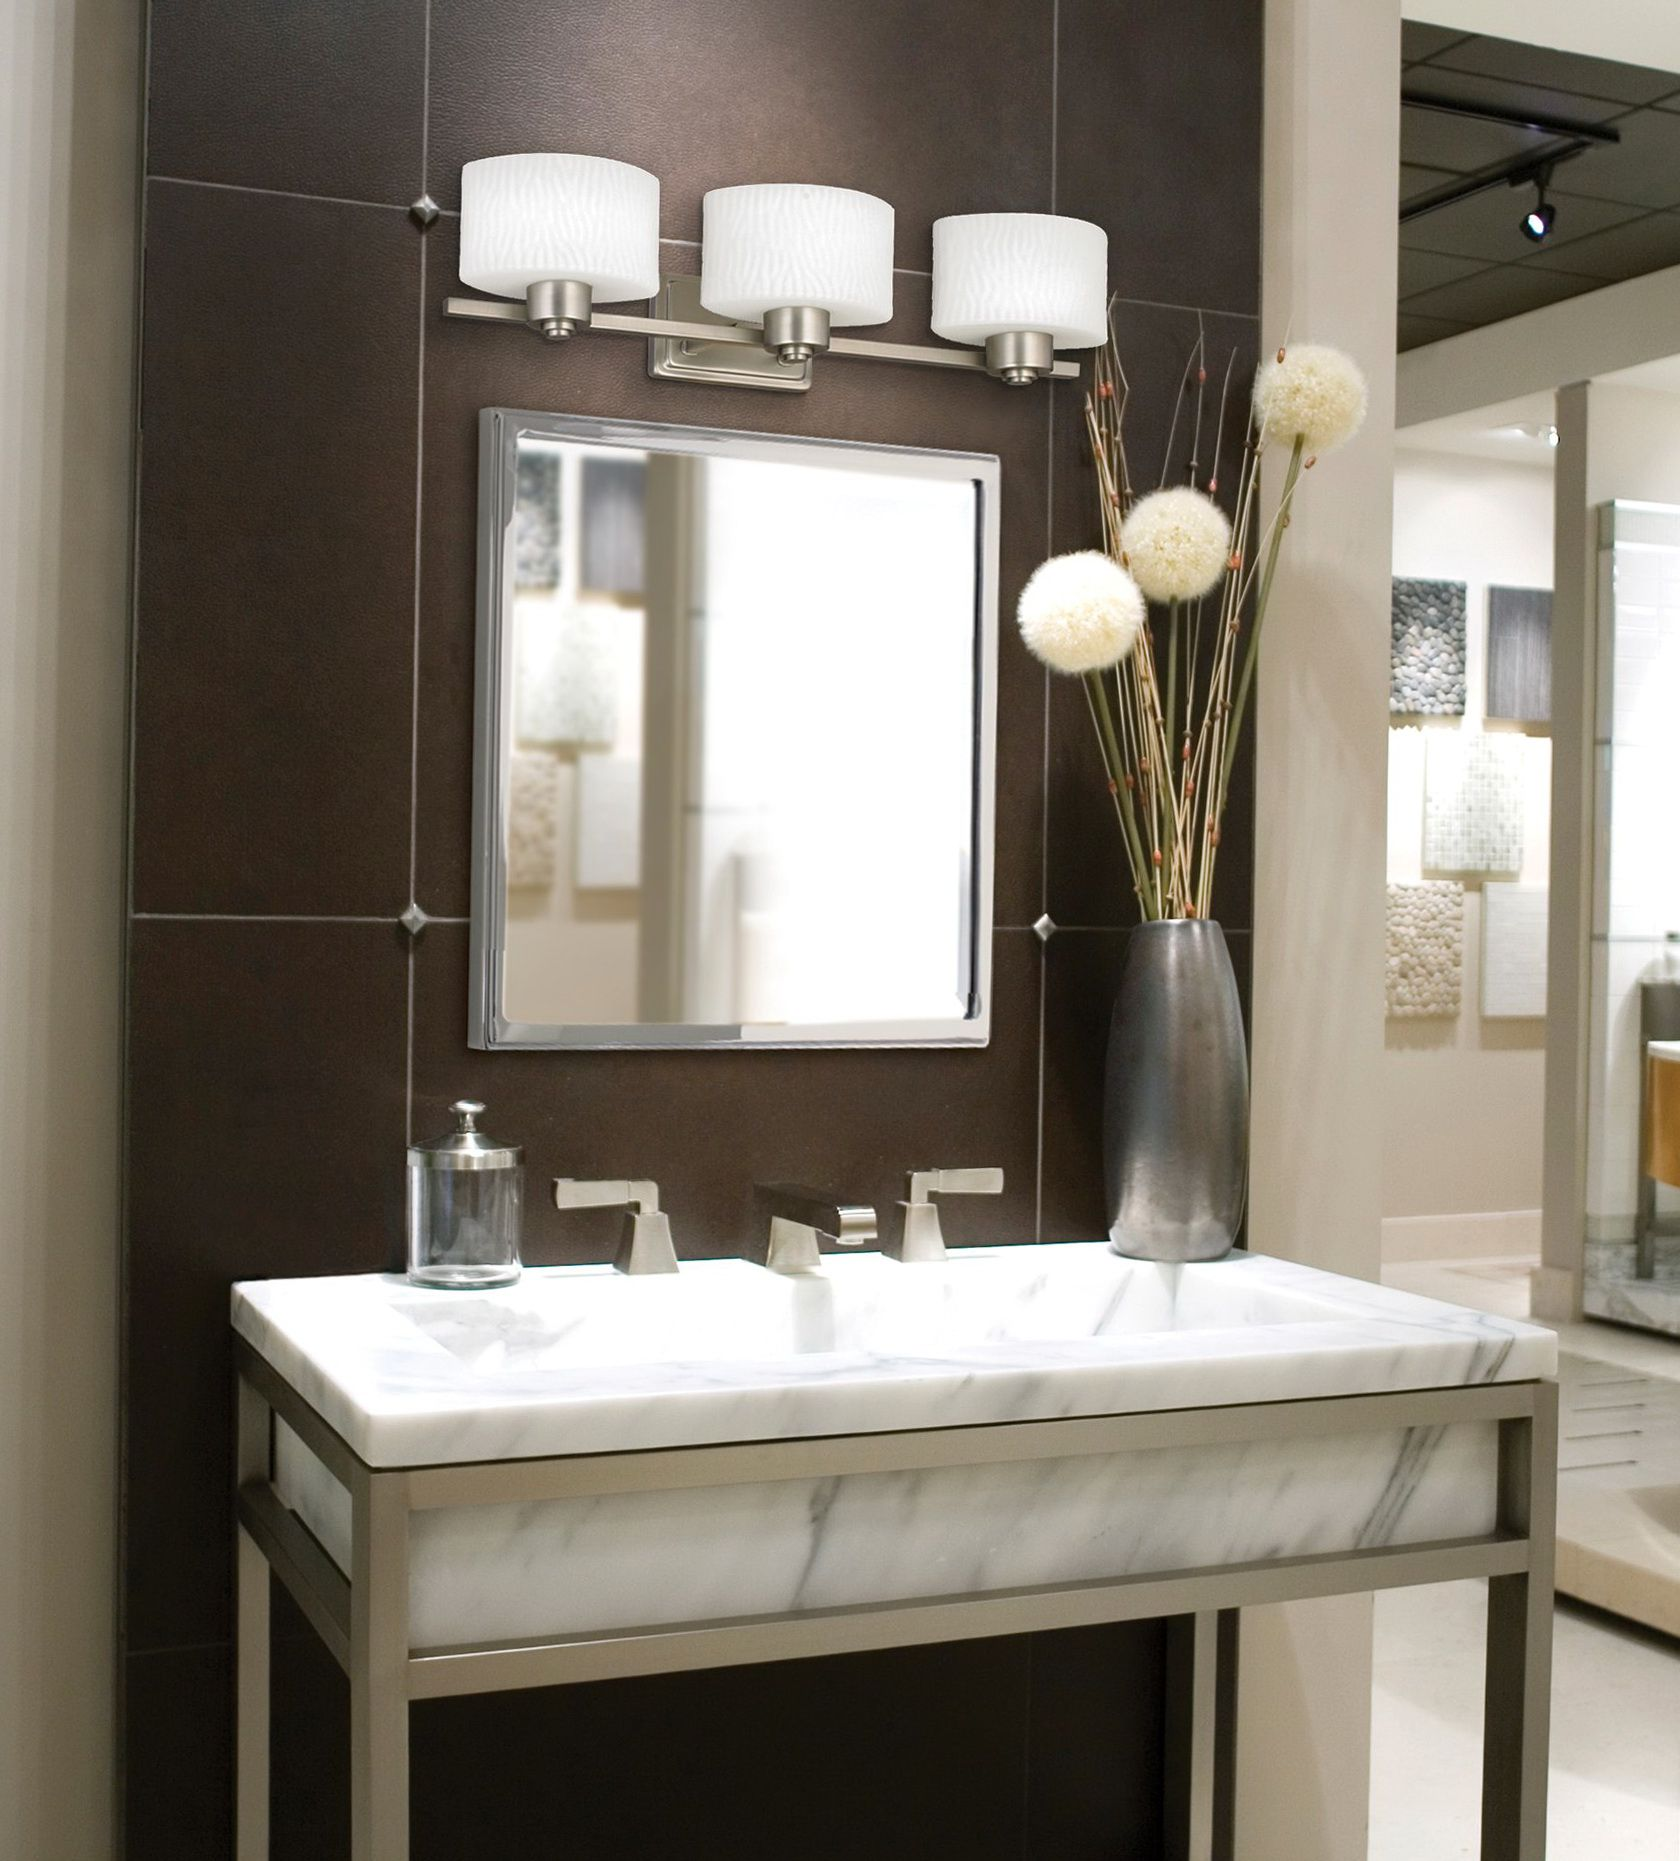 Use Glossy Framed Bathroom Vanity Mirrors for Minimalist Room with Marble Sink and Tile Wall